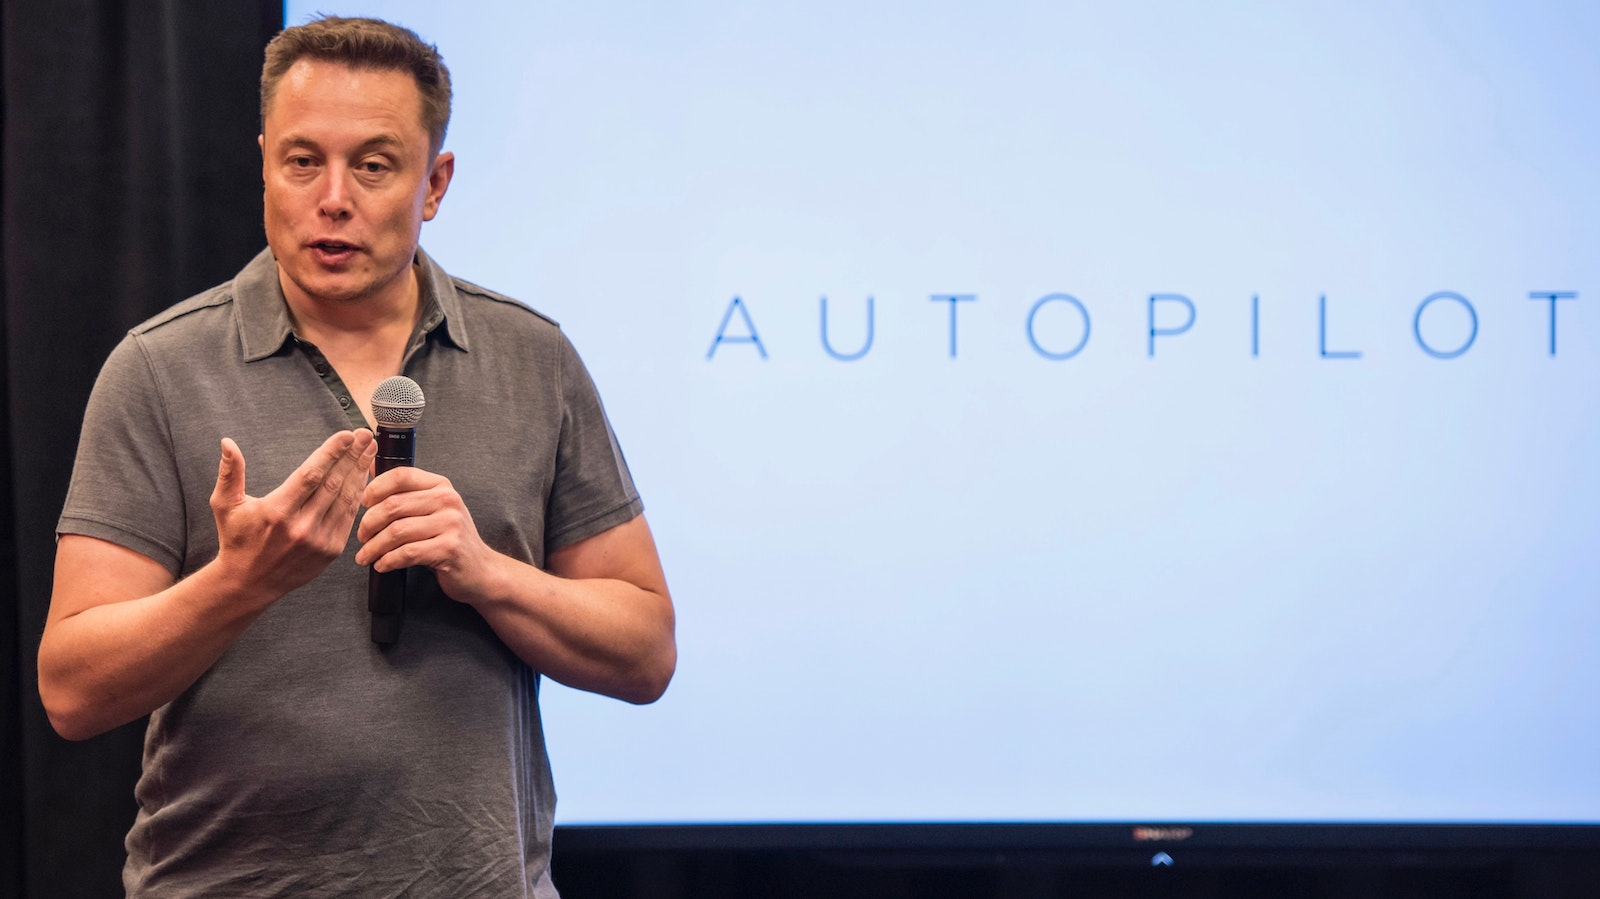 Elon Musk at a 2015 event. Photo by Bloomberg